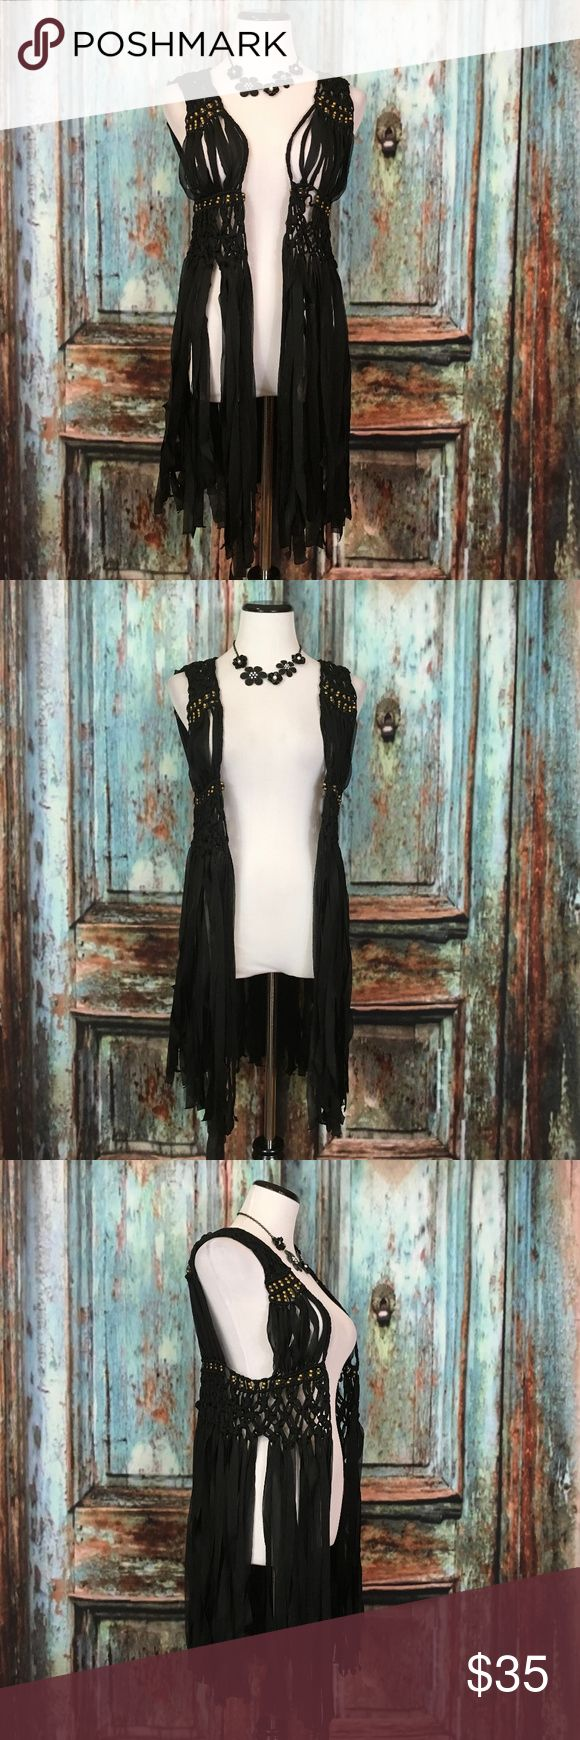 """Boho Hippie Goth Black Gold Fringe Cardigan Vest Woman's Size XS/S, gently used with minimal wear. Please see photos for exact details.   Armpit to armpit -18""""  Length -34""""  Please Note: The necklace in pictures is not for sell. Chelsea & Violet Jackets & Coats Vests"""